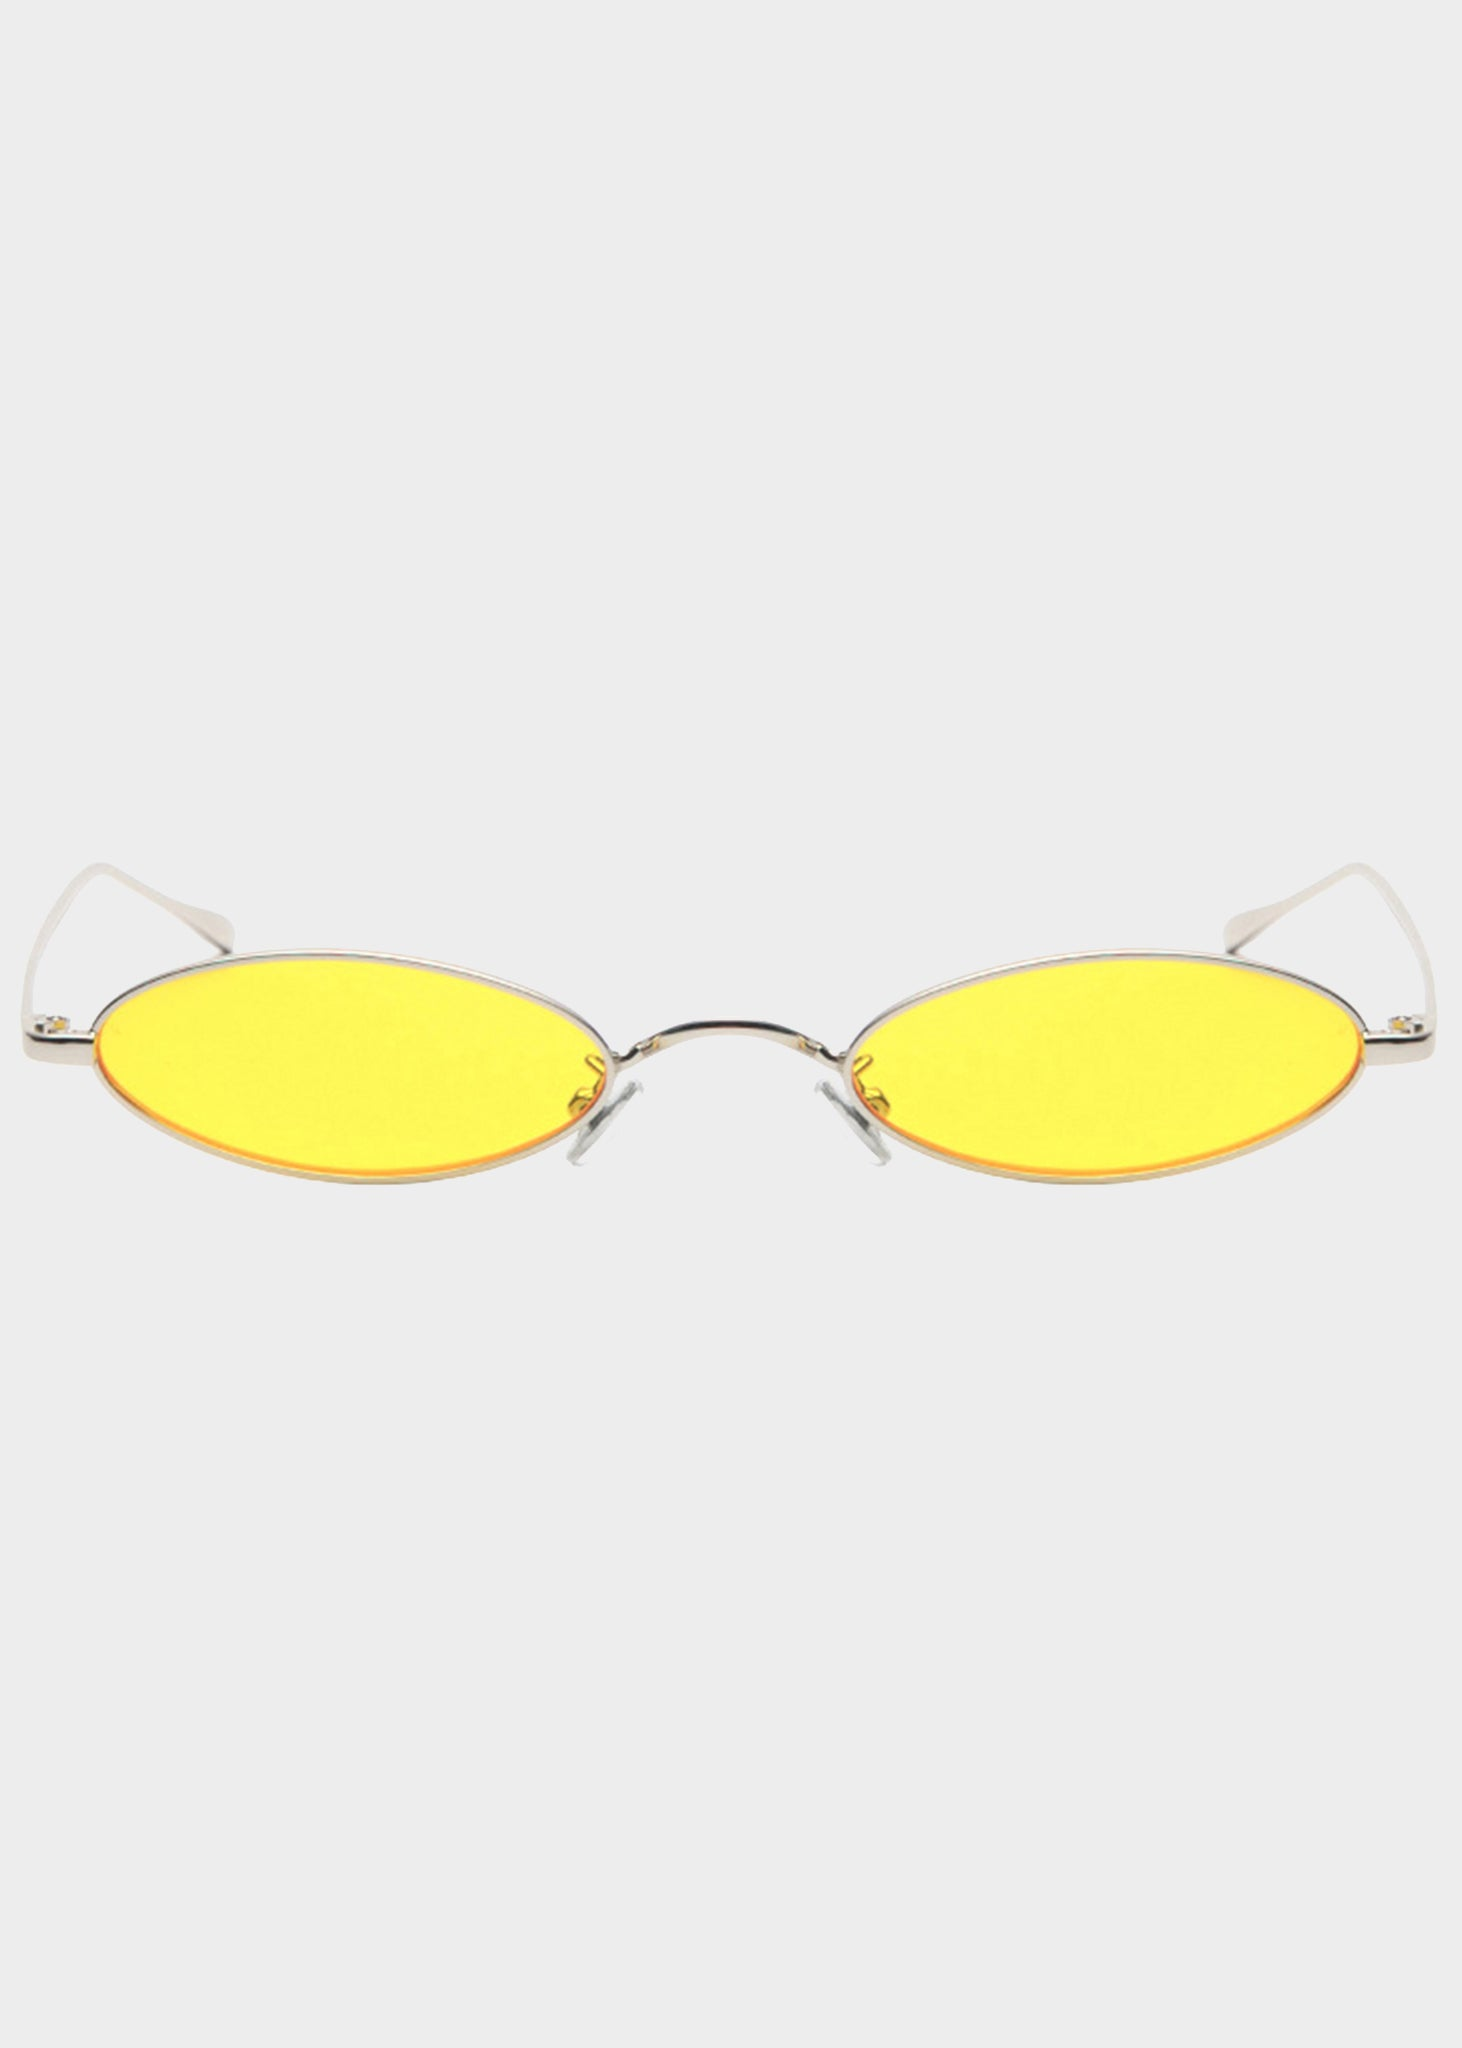 8d9b0c3d7e ... Yellow Small Lens Oval Sunglasses